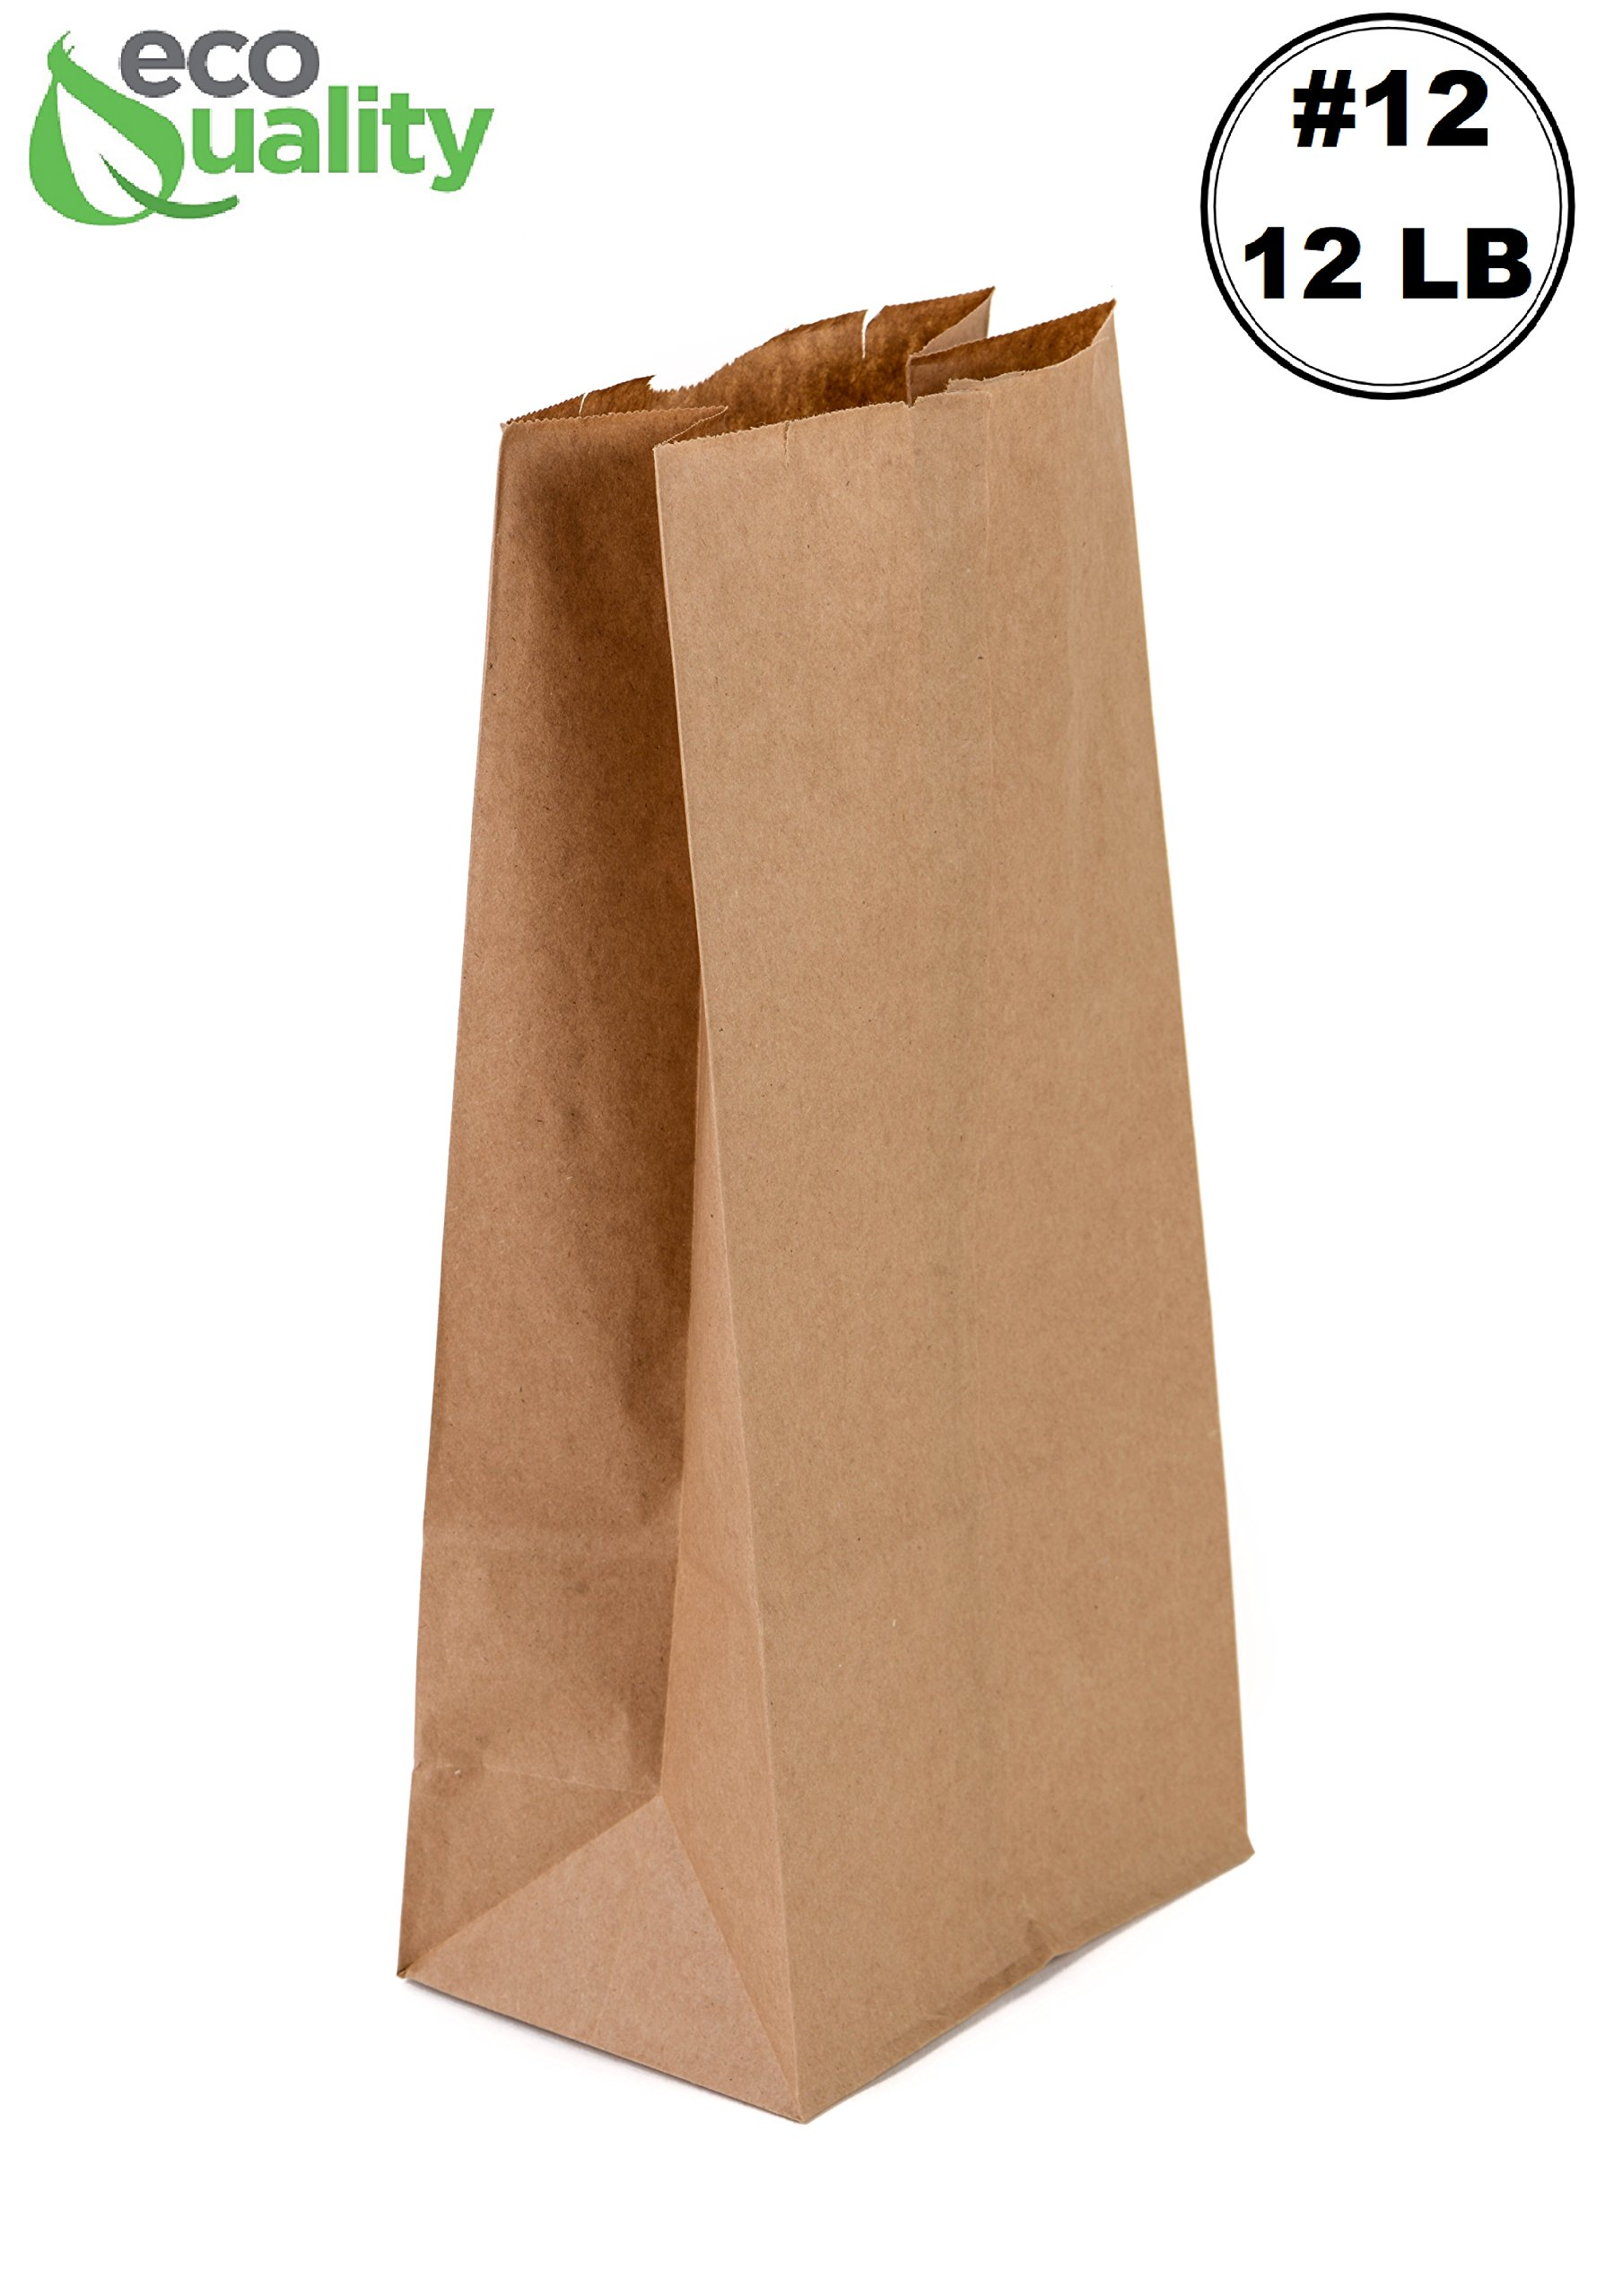 EcoQuality 500 Brown Kraft Paper Bag (12 lb) Medium - Paper Lunch Bags, Small Snacks, Gift Bags, Grocery, Merchandise, Party Bags (7-1/16 x 4-1/2 x 13-3/4'') (12 Pound Capacity)